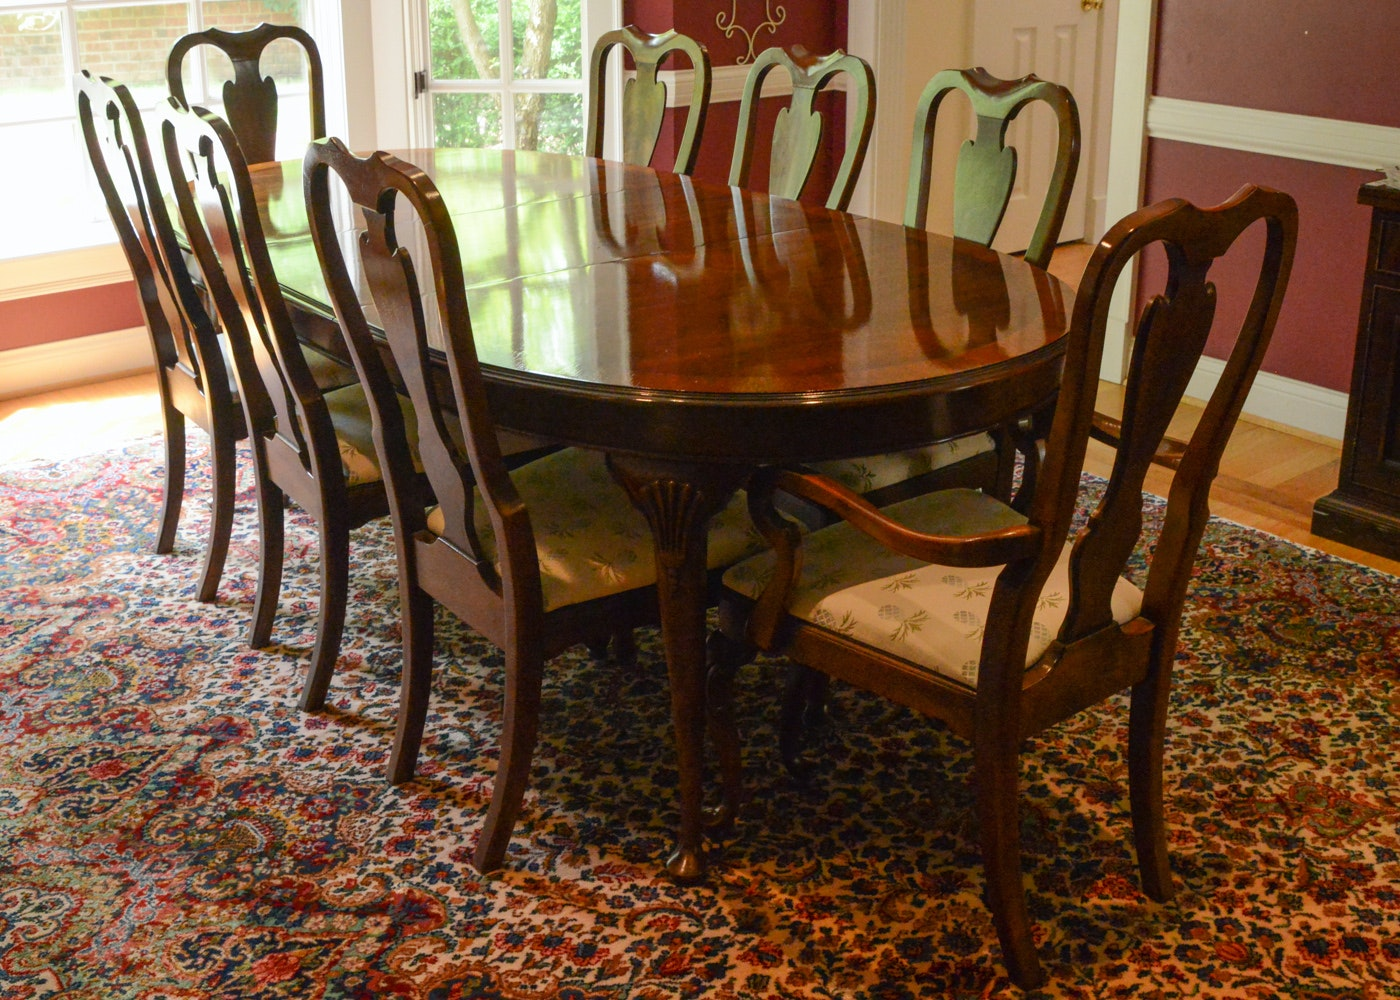 Drexel Heritage Mahogany Dining Room Table and Chairs